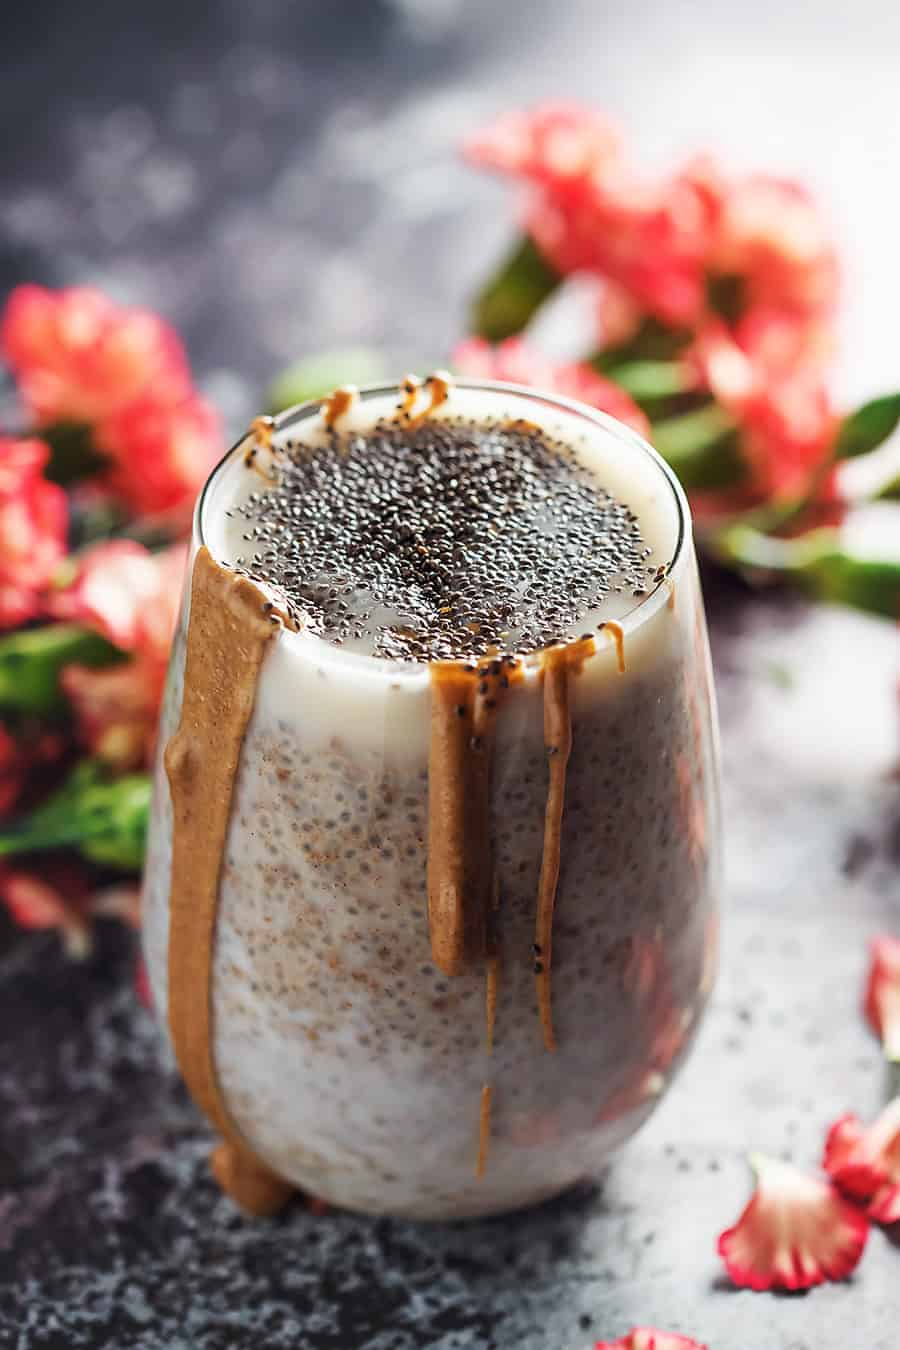 chia seeds pudding in a glass with flowers around